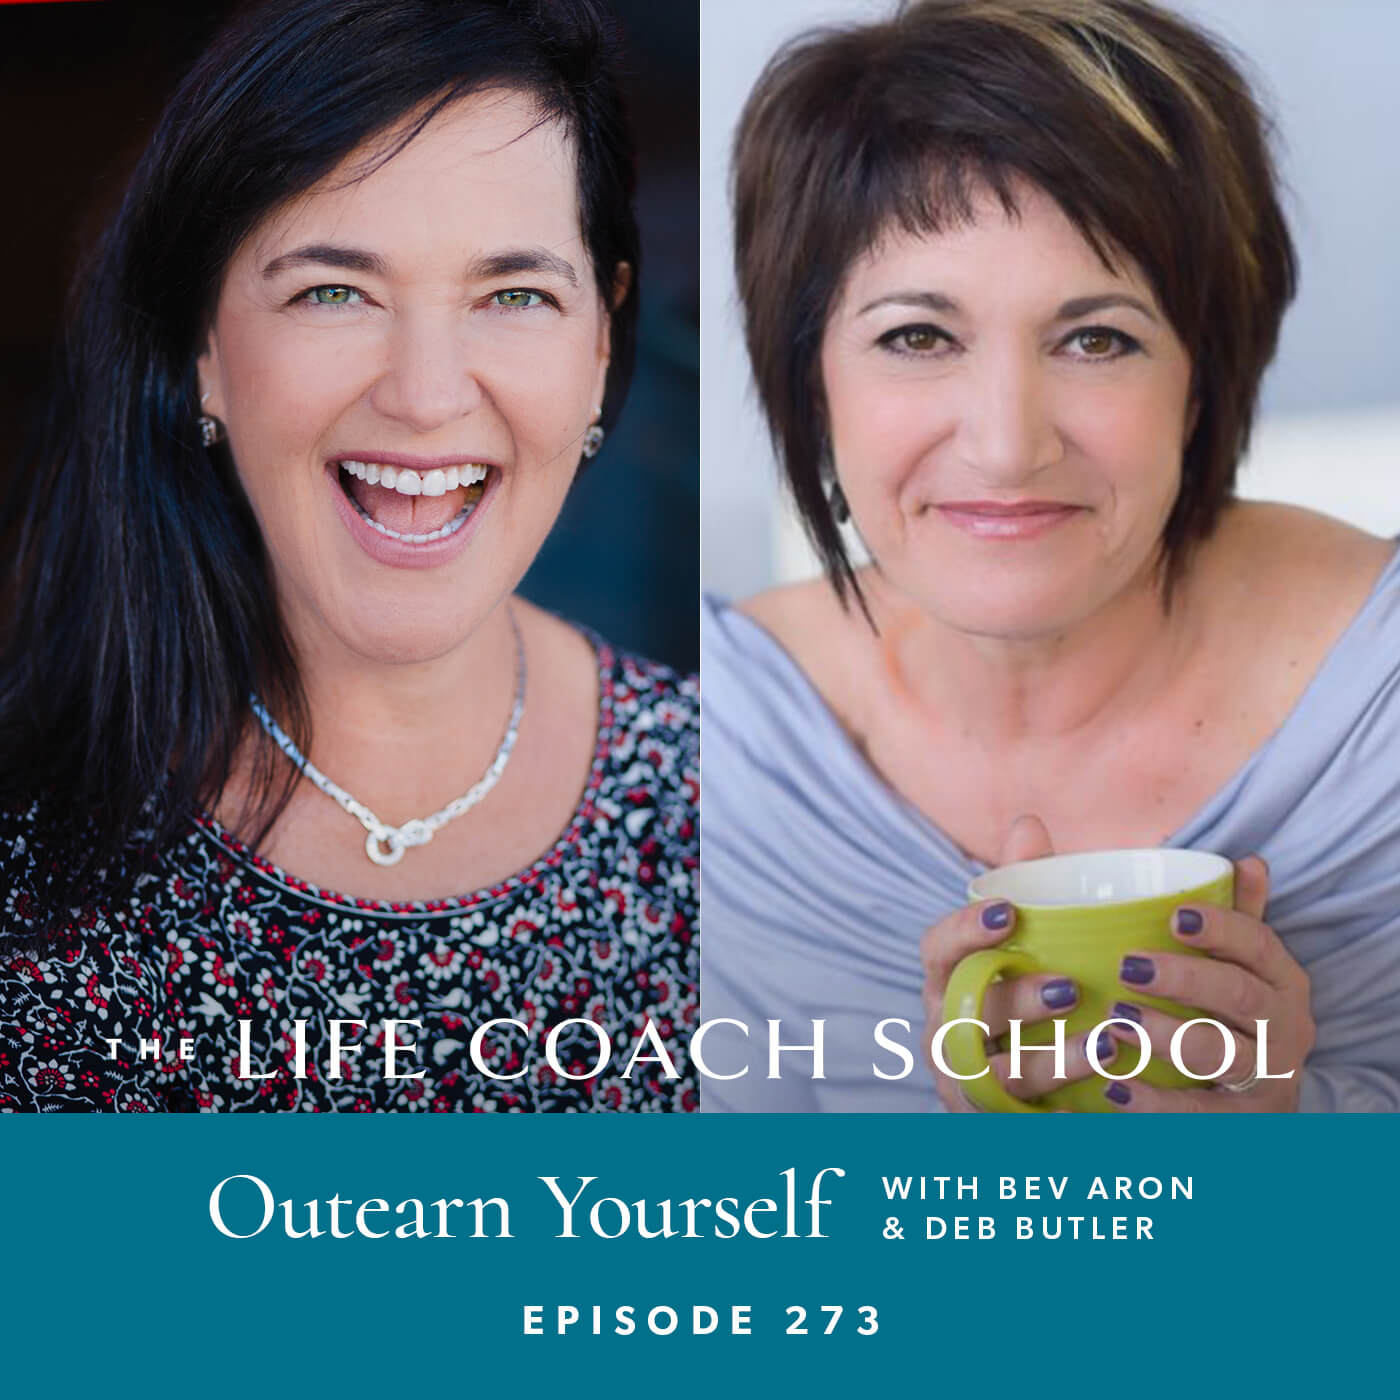 The Life Coach School Podcast with Brooke Castillo | Episode 273 | Outearn Yourself with Bev Aron and Deb Butler